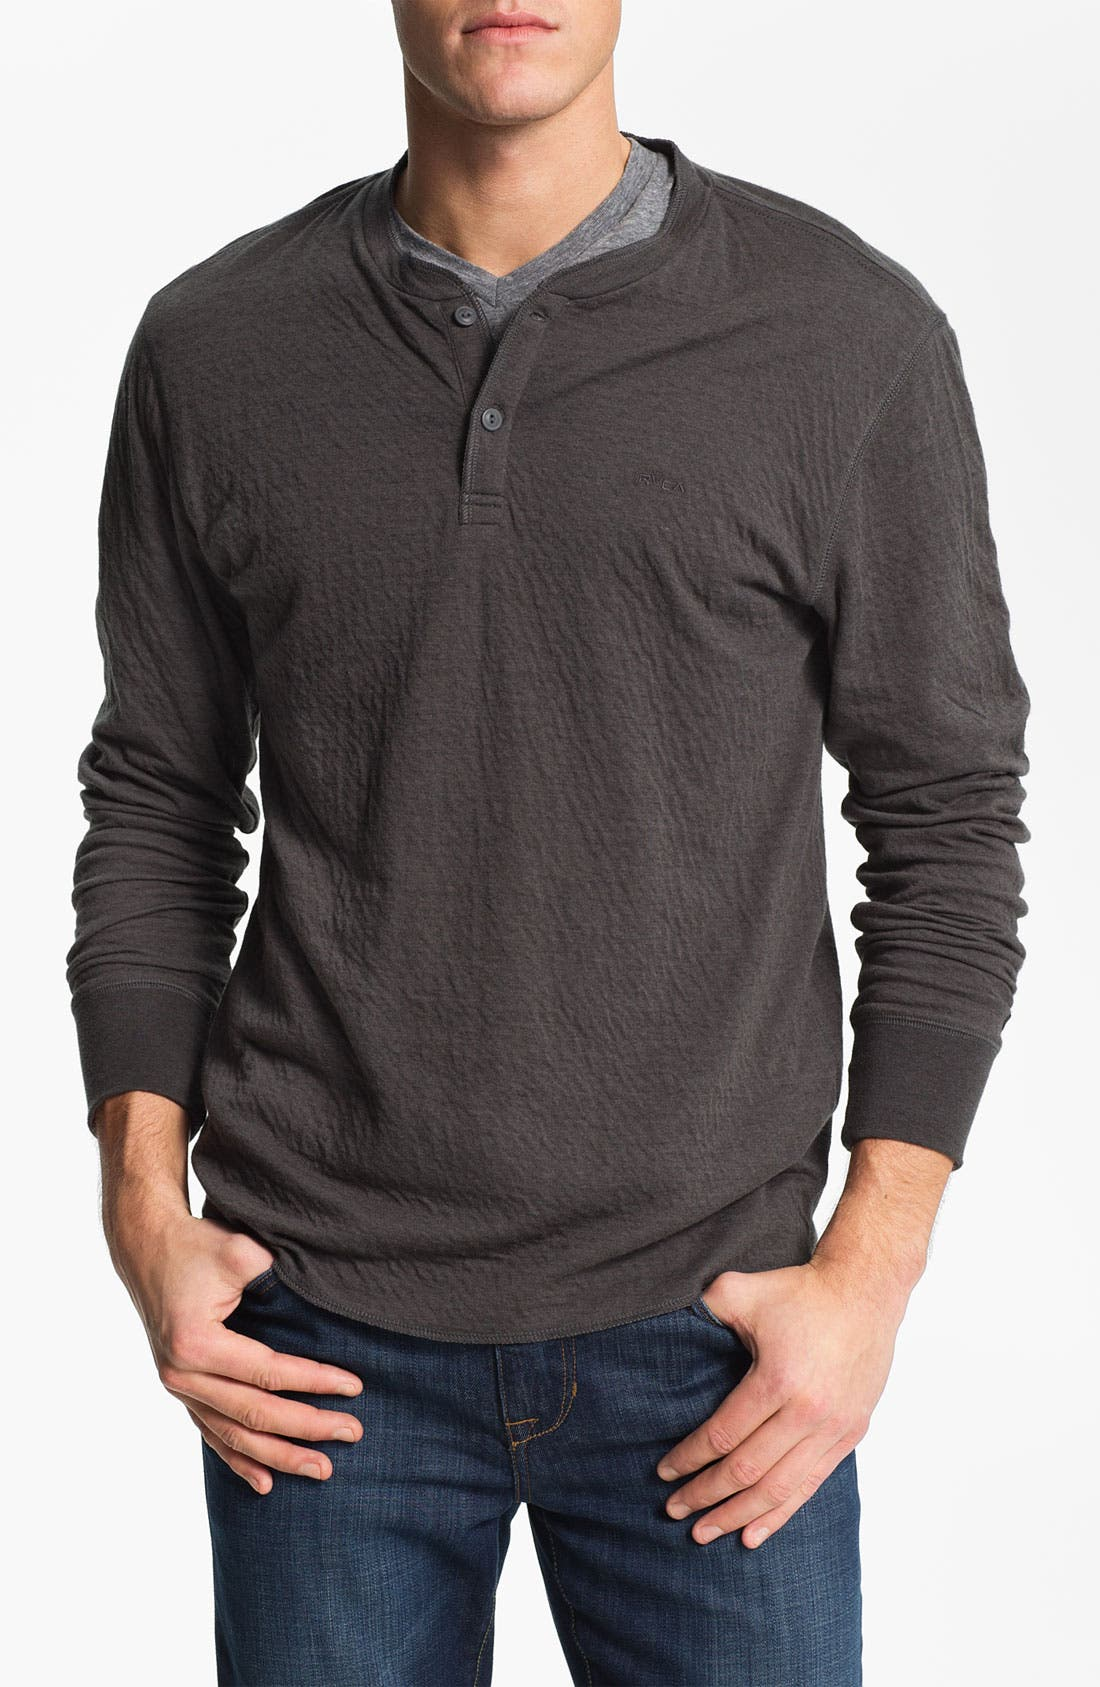 Alternate Image 1 Selected - RVCA 'Logger' Knit Henley Shirt